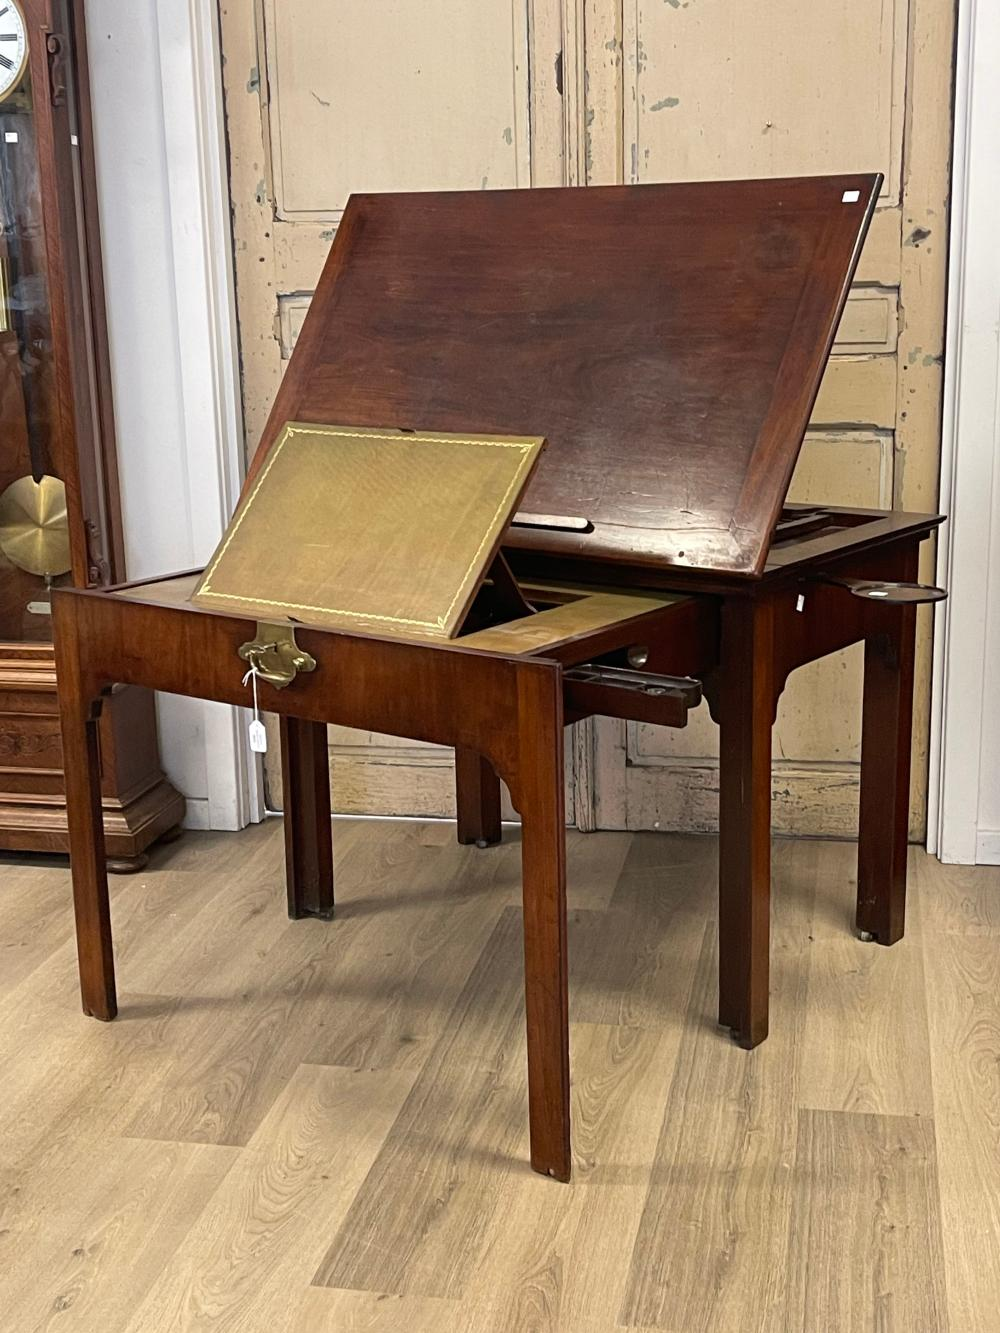 Antique George III mahogany Architects desk, lift up adjustable drawing surface, pull out front with fitted interior, with leather writing surface, and sectional interior, original brass lock with key. Pull out candle…